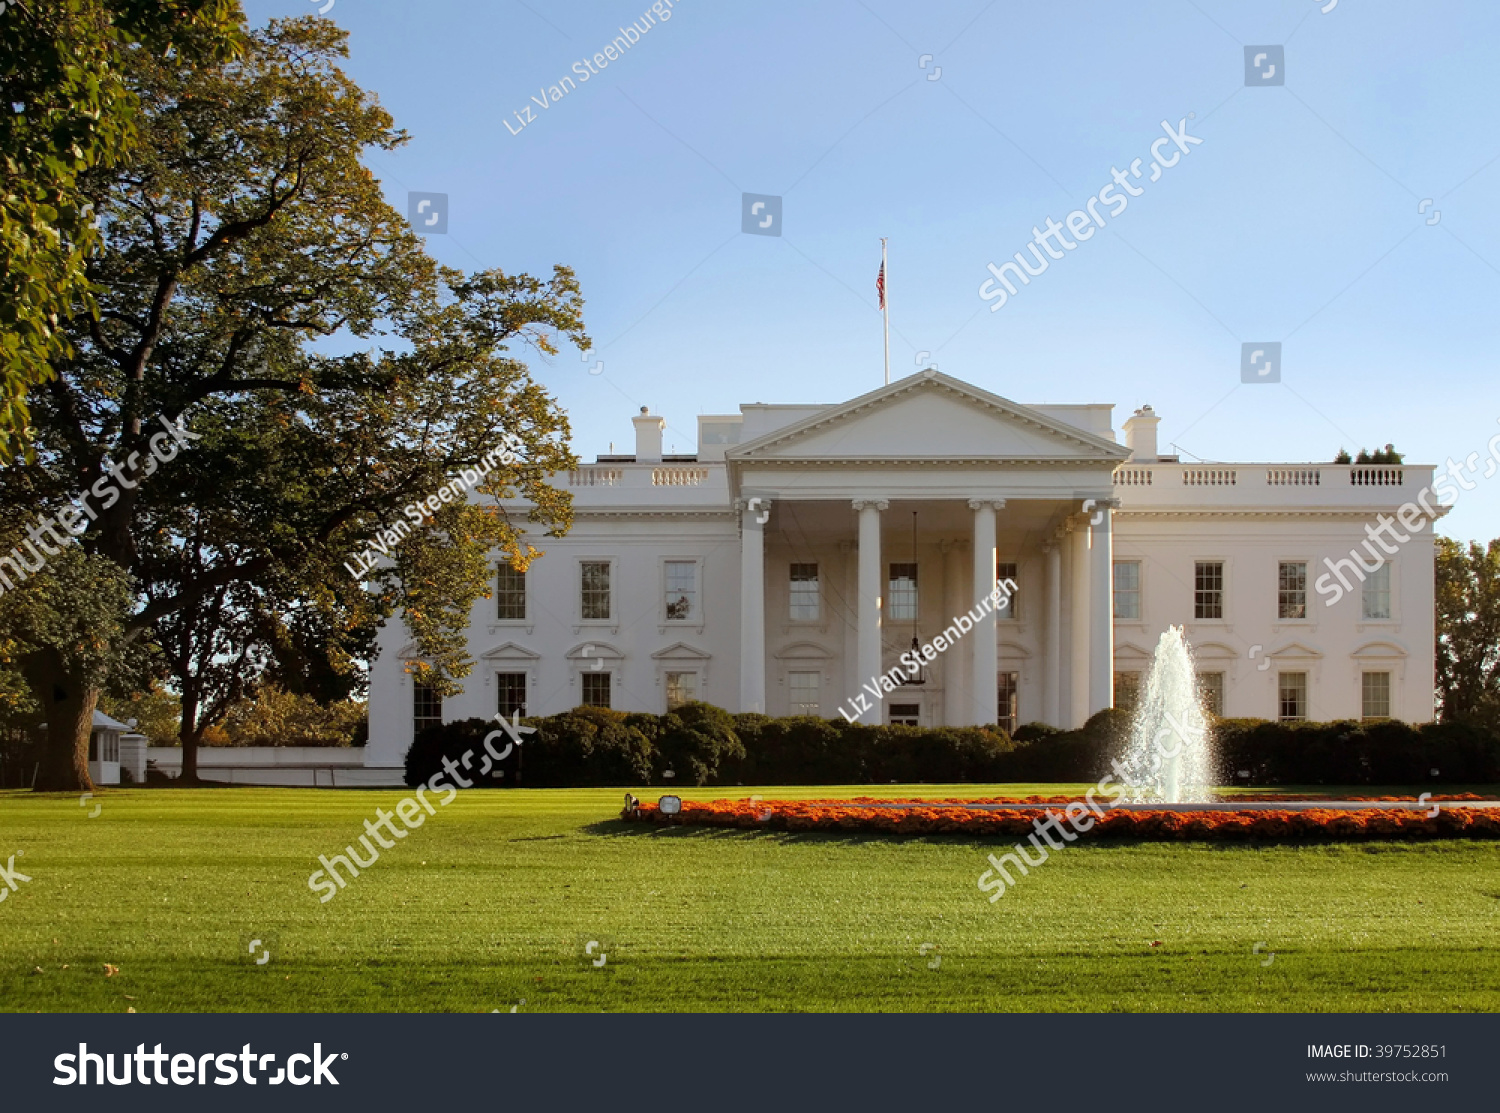 The home of the united states president the white house for Presidents and their home states